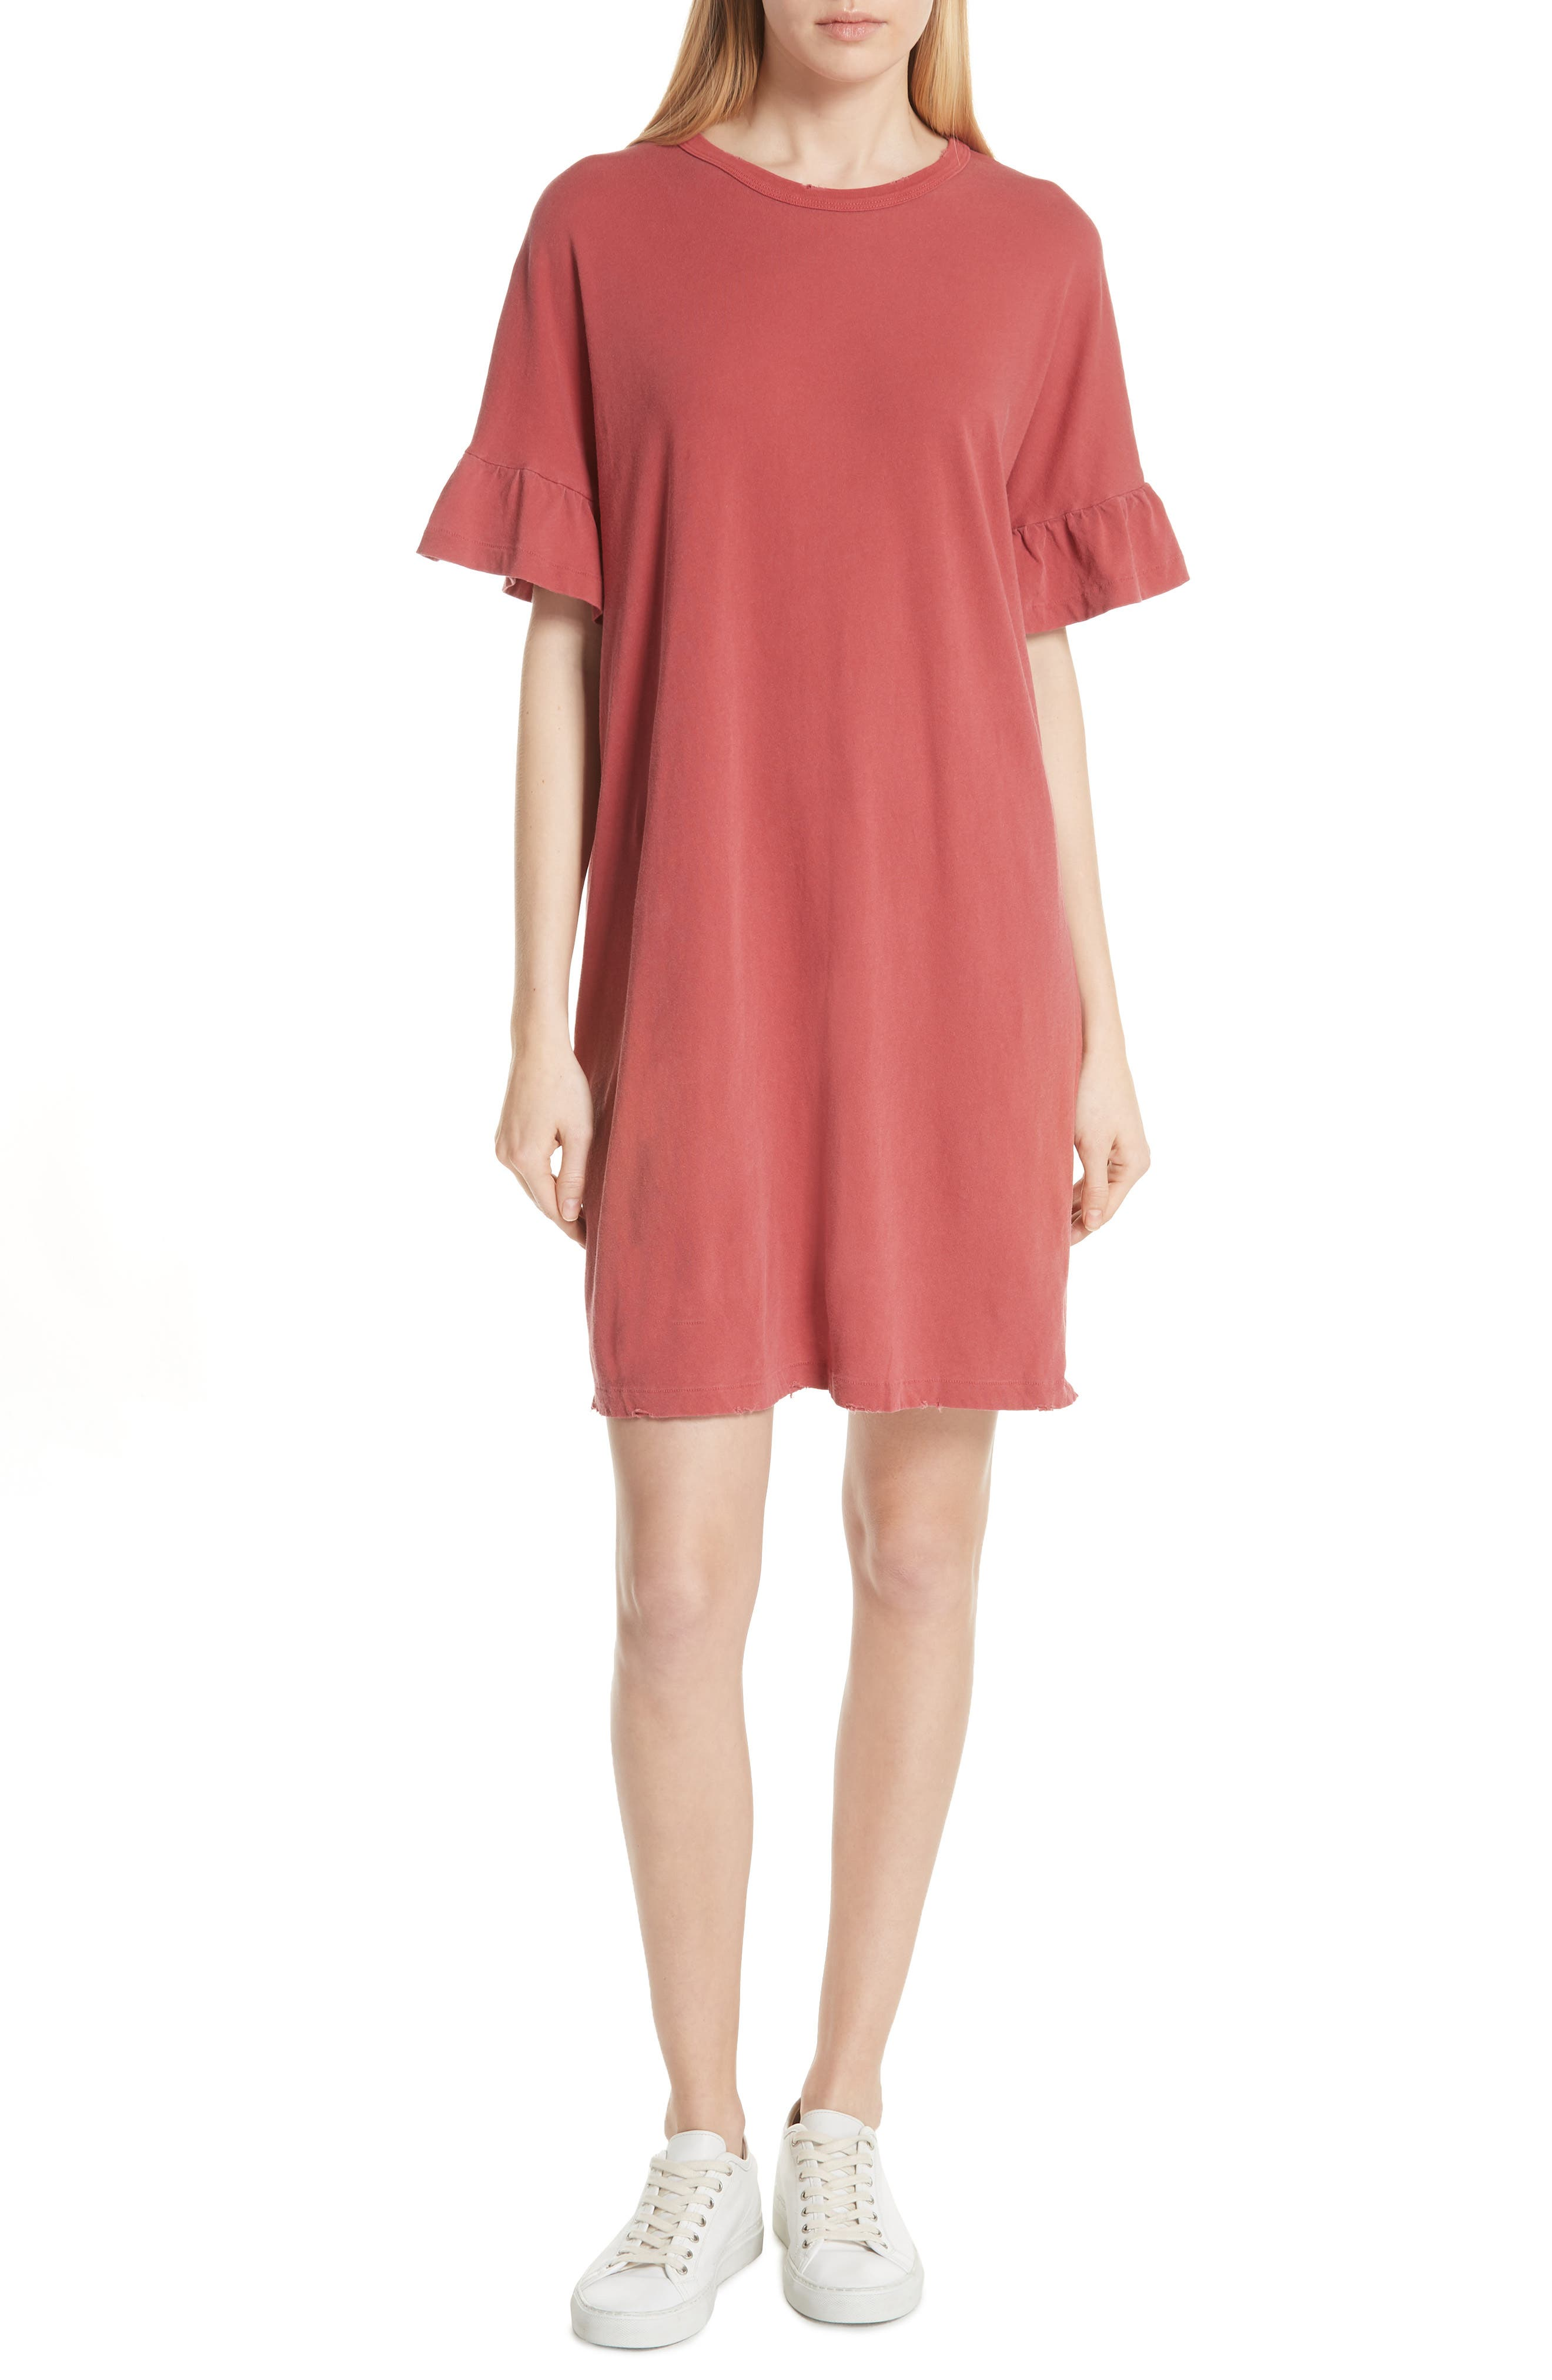 Ruffle Sleeve T-Shirt Dress,                             Main thumbnail 1, color,